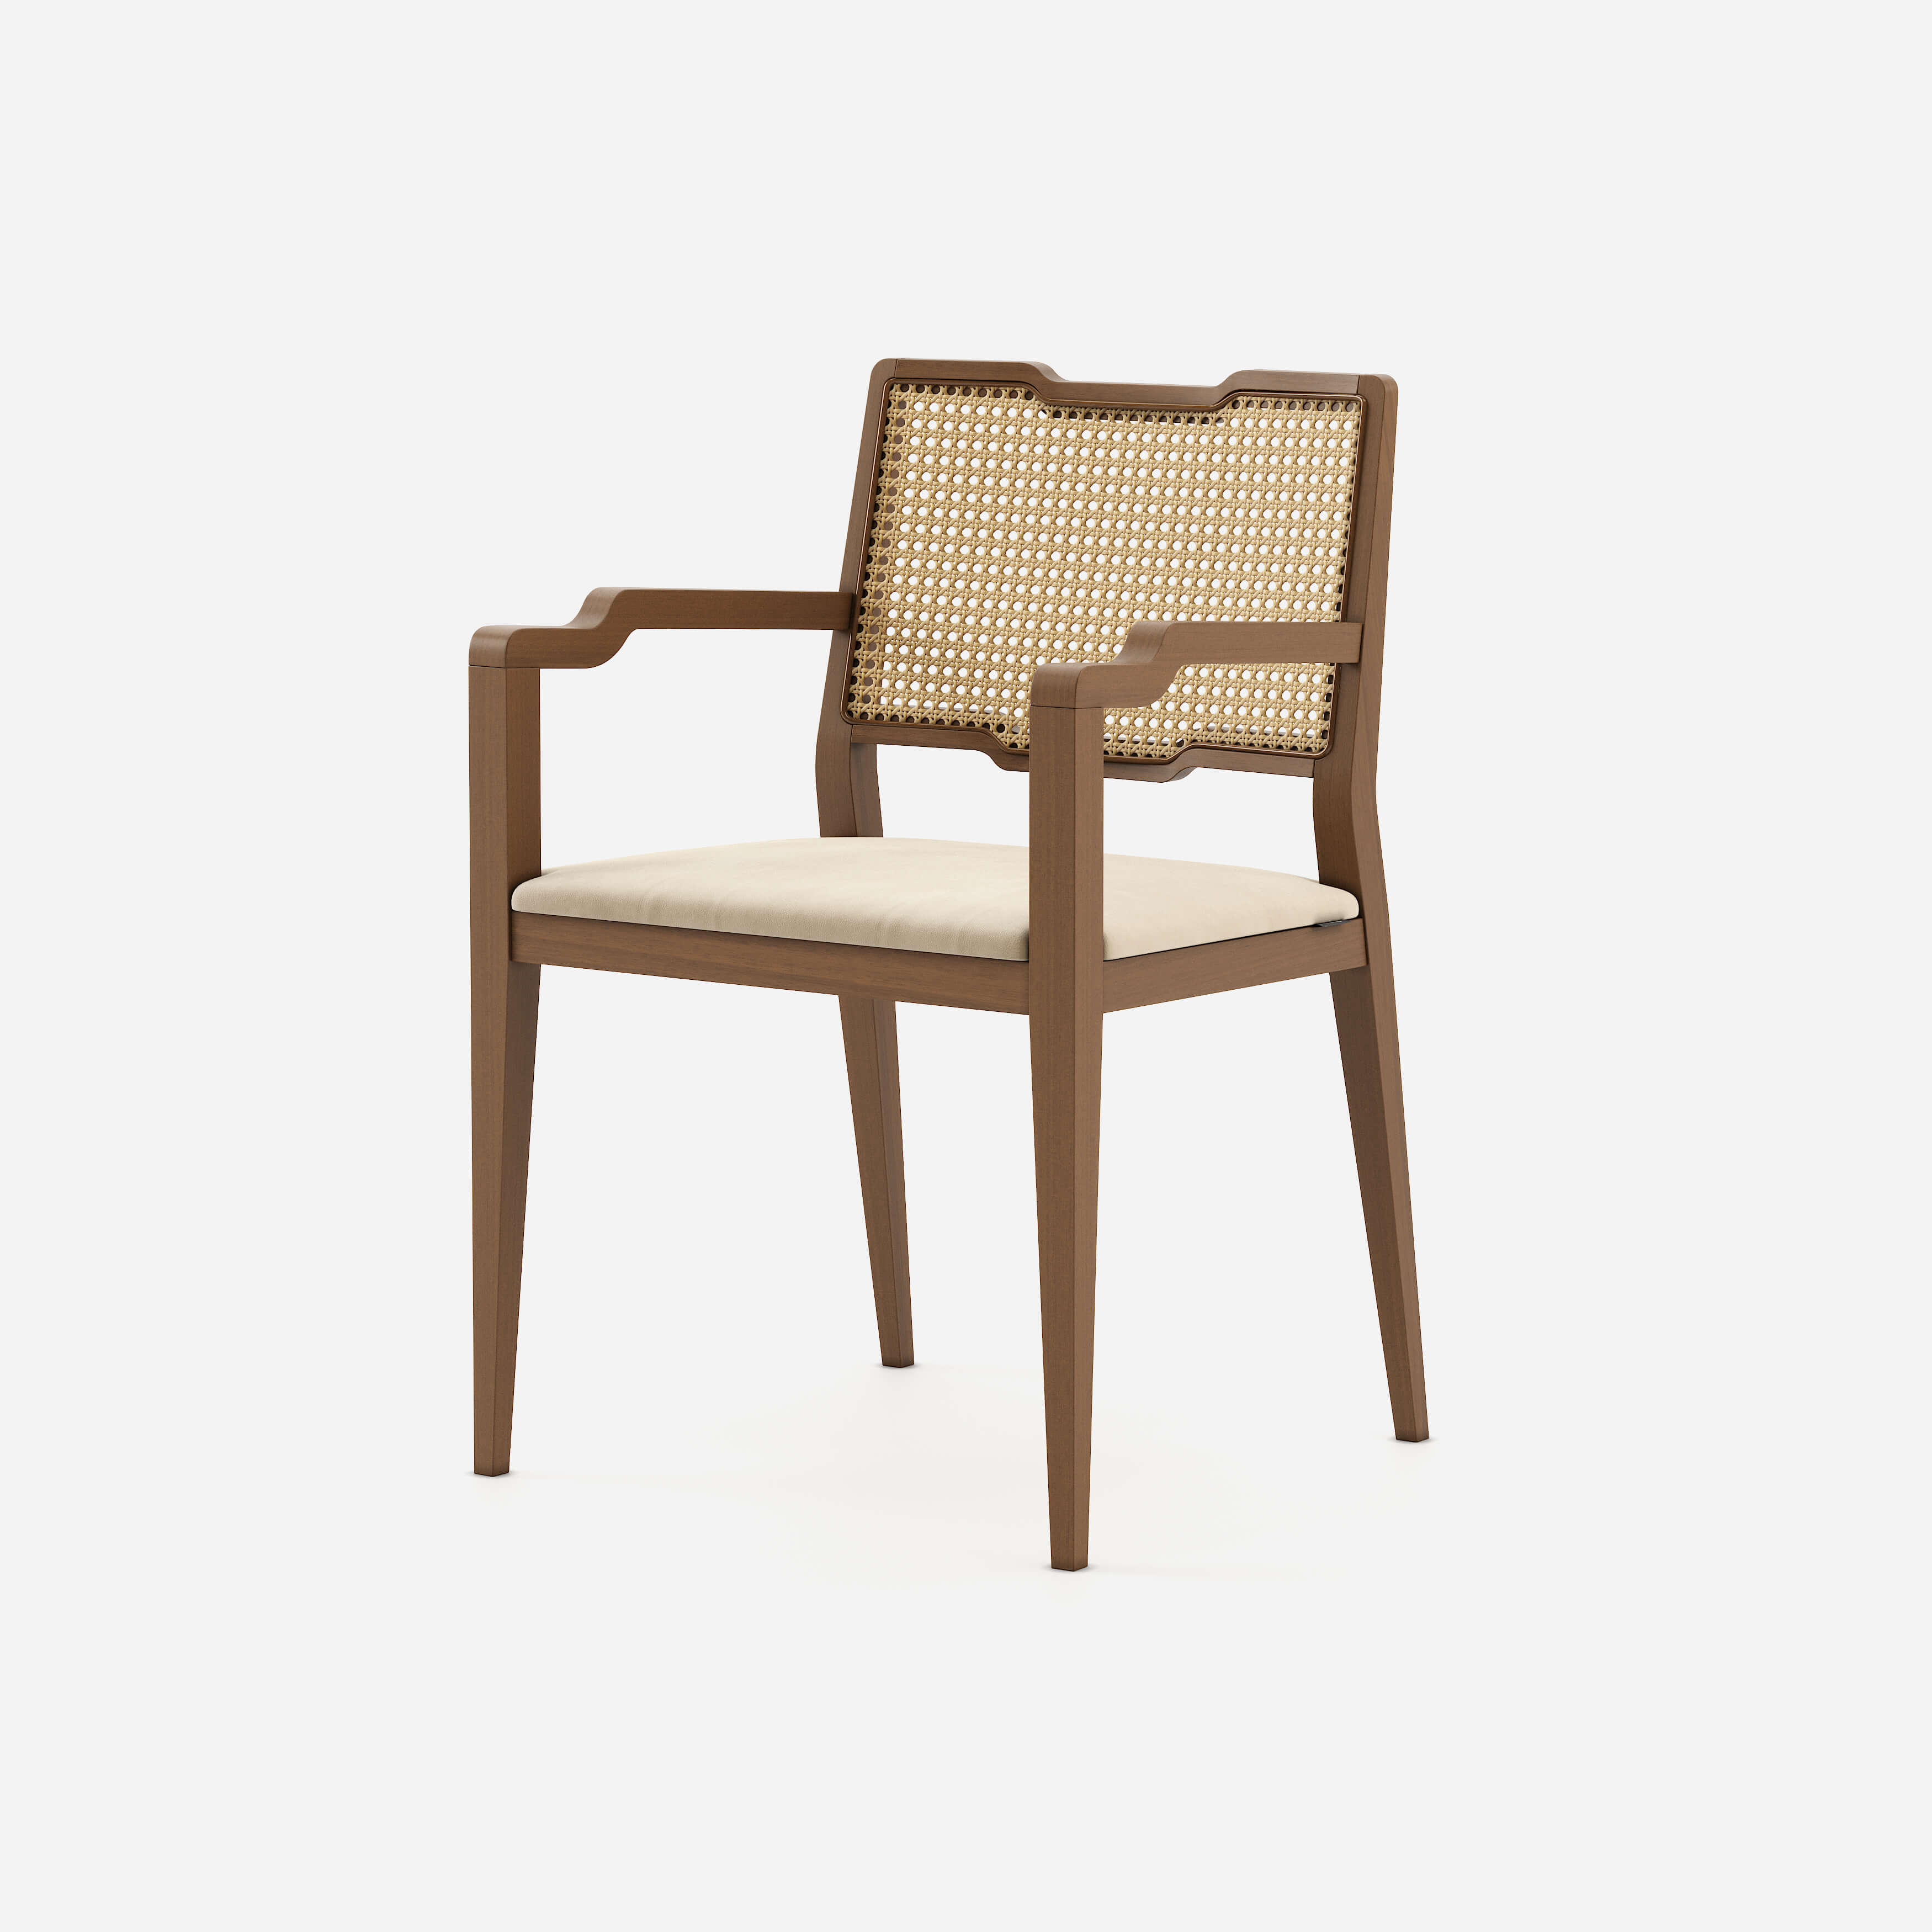 eva-dining-armchair-dining-room-projects-woodwork-brown-domkapa-1